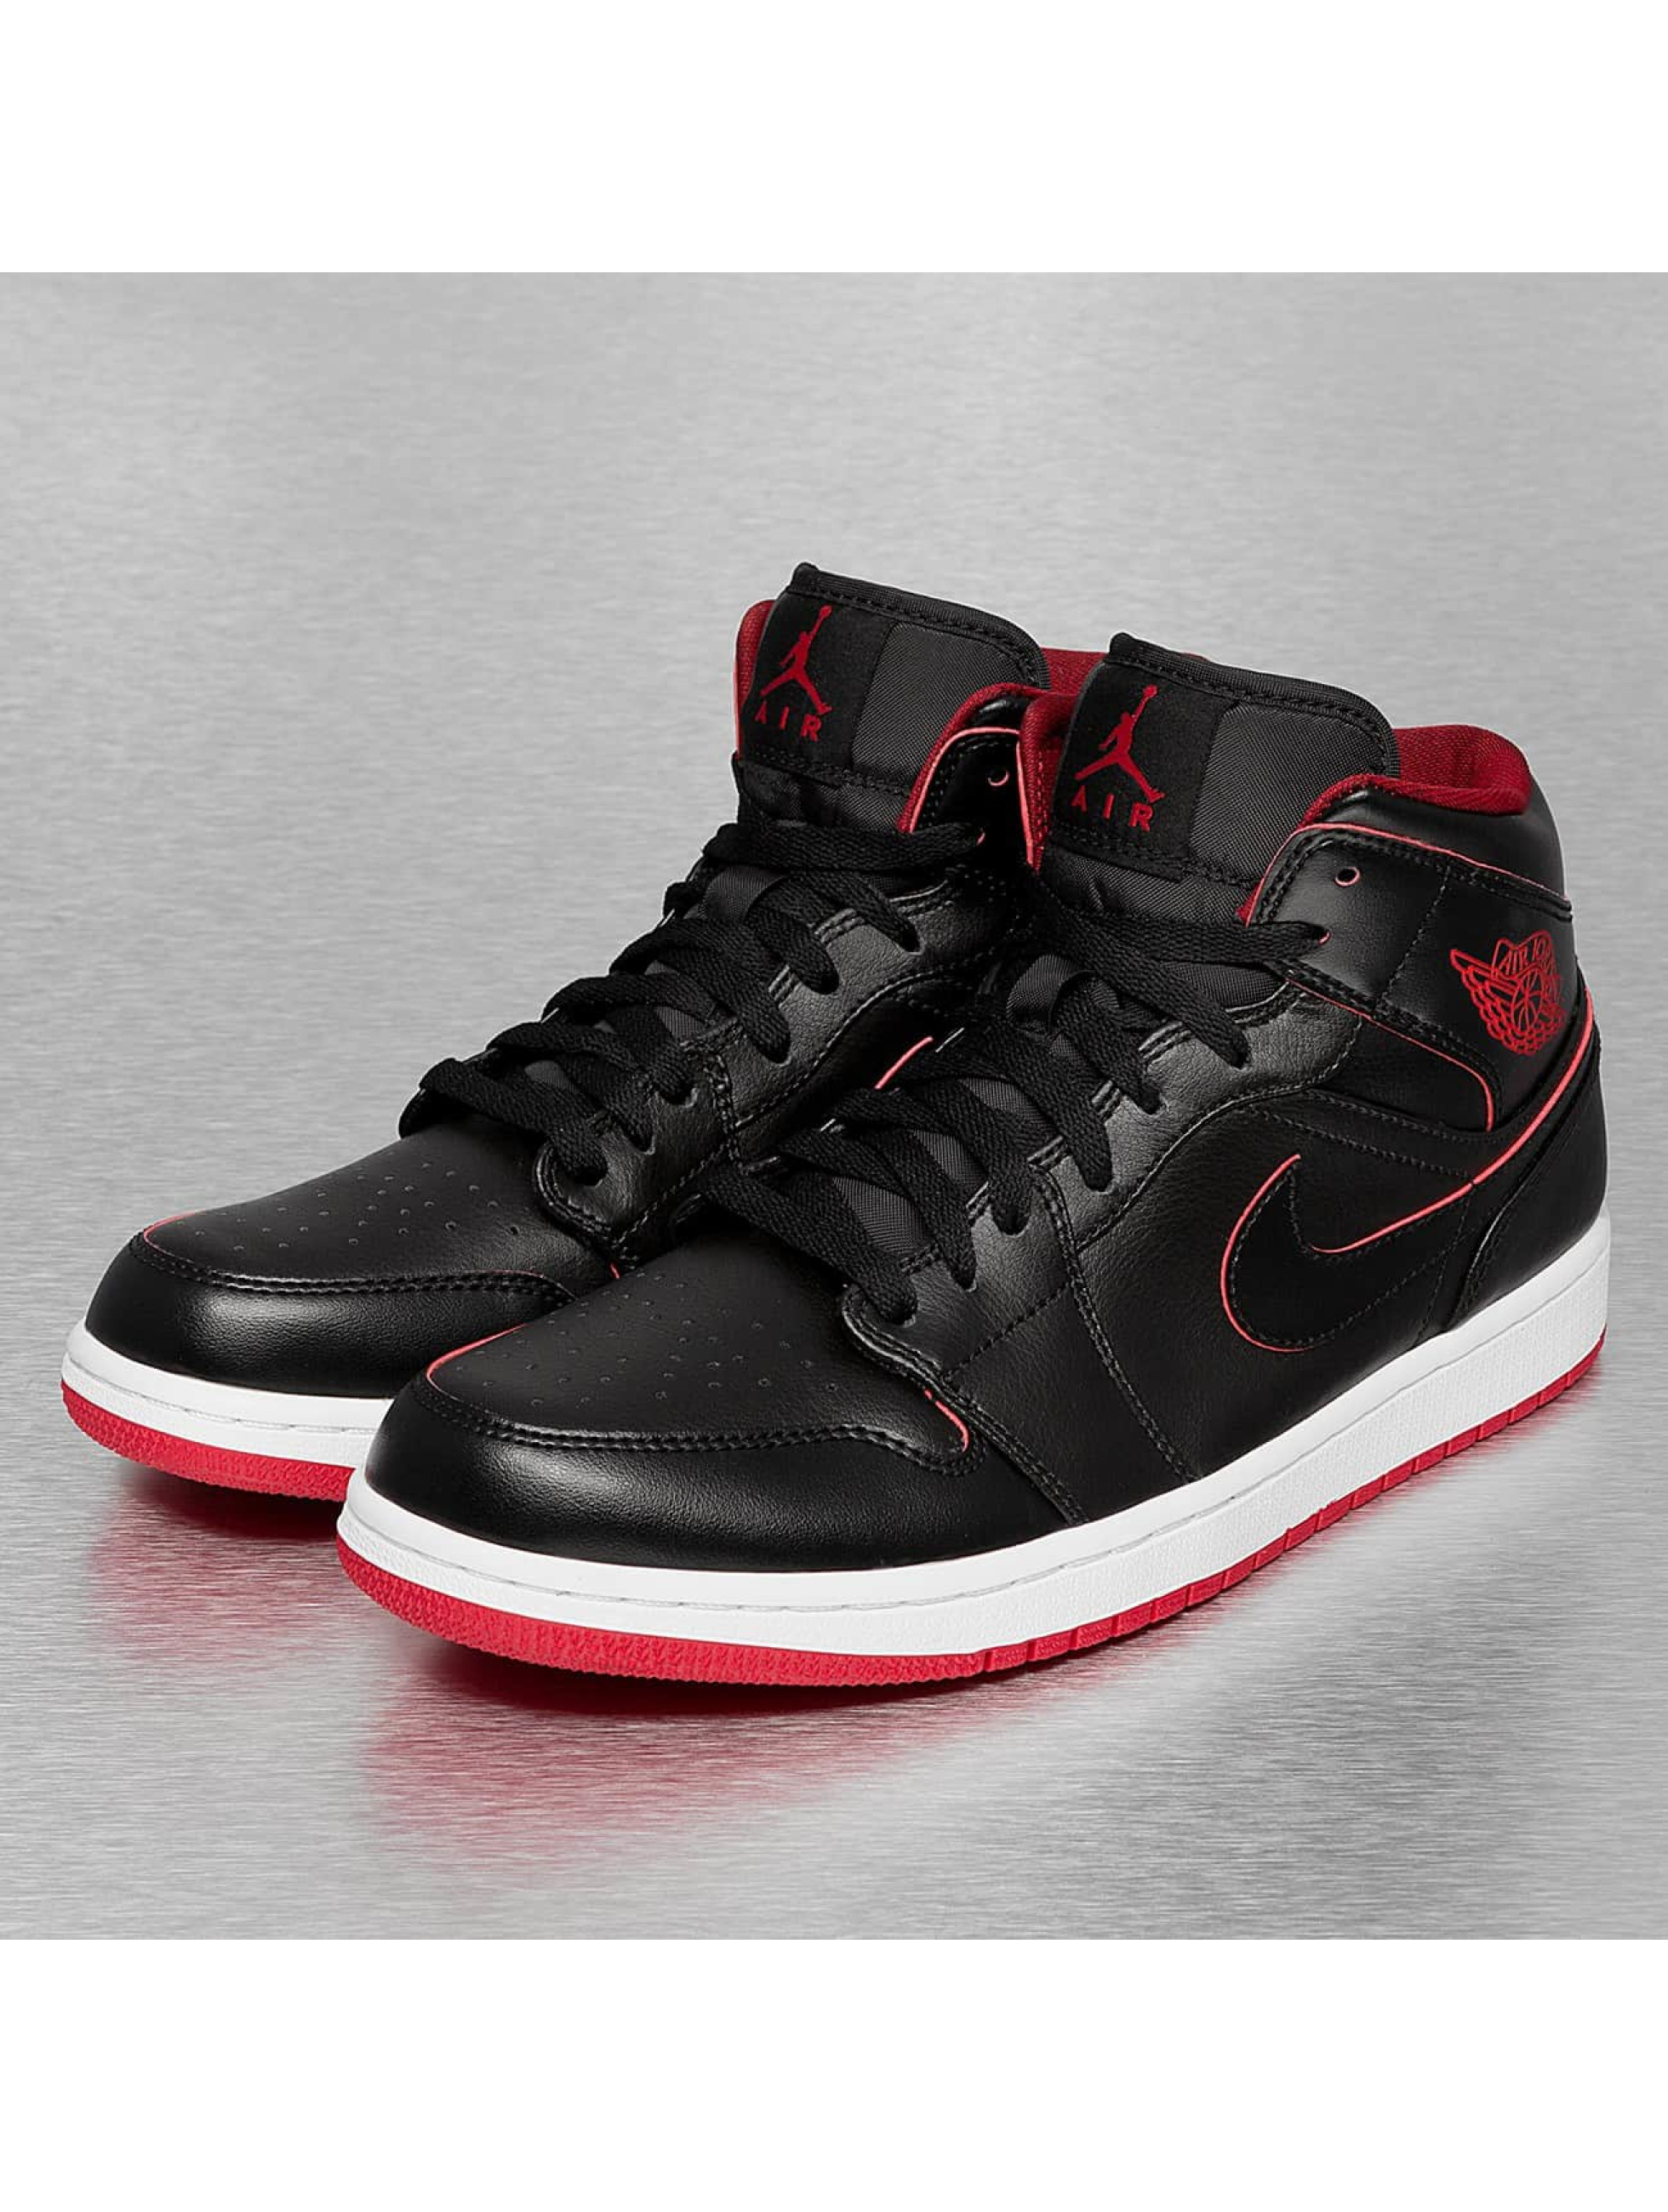 nike jordans rot schwarz. Black Bedroom Furniture Sets. Home Design Ideas